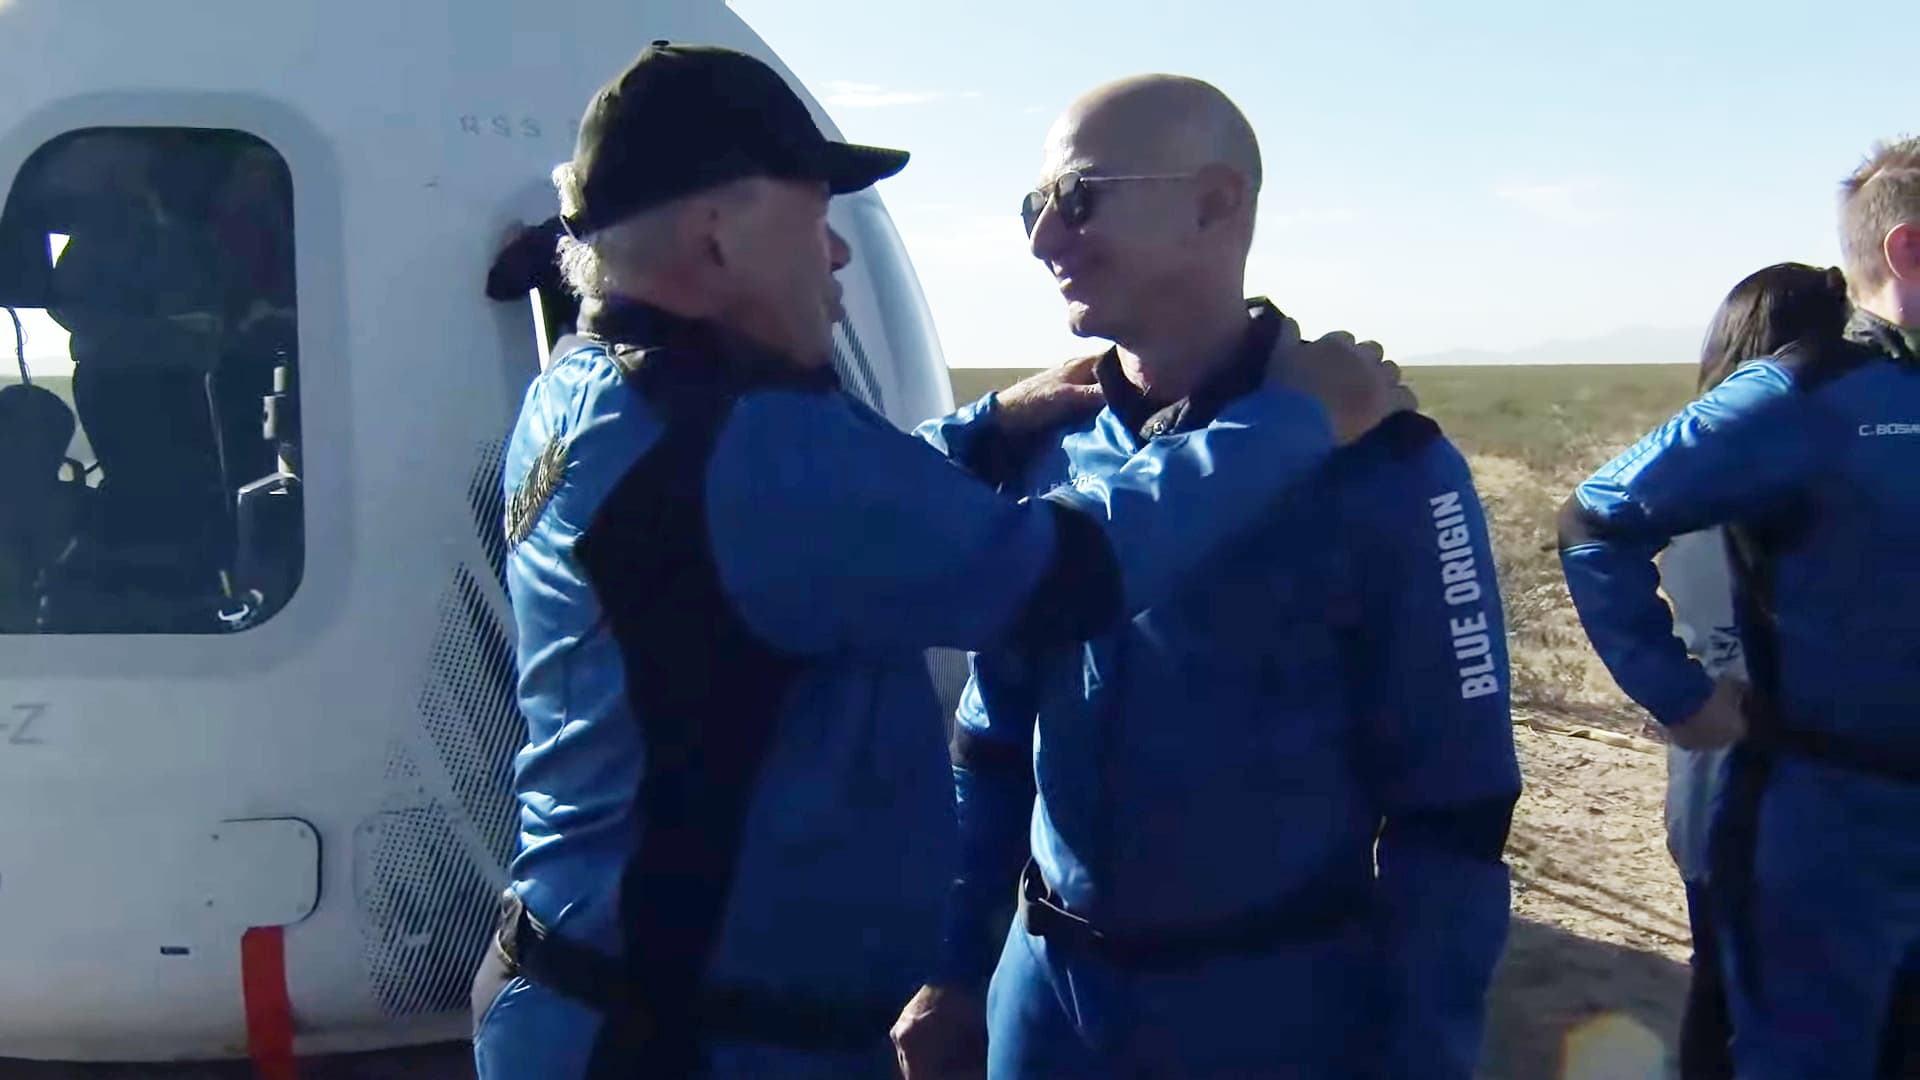 A screenshot taken from a live handout video on October 13, 2021 shows Jeff Bezos talks to William Shatner after Blue Origin's New Shepard crew capsule landed back in Texas, the United States.